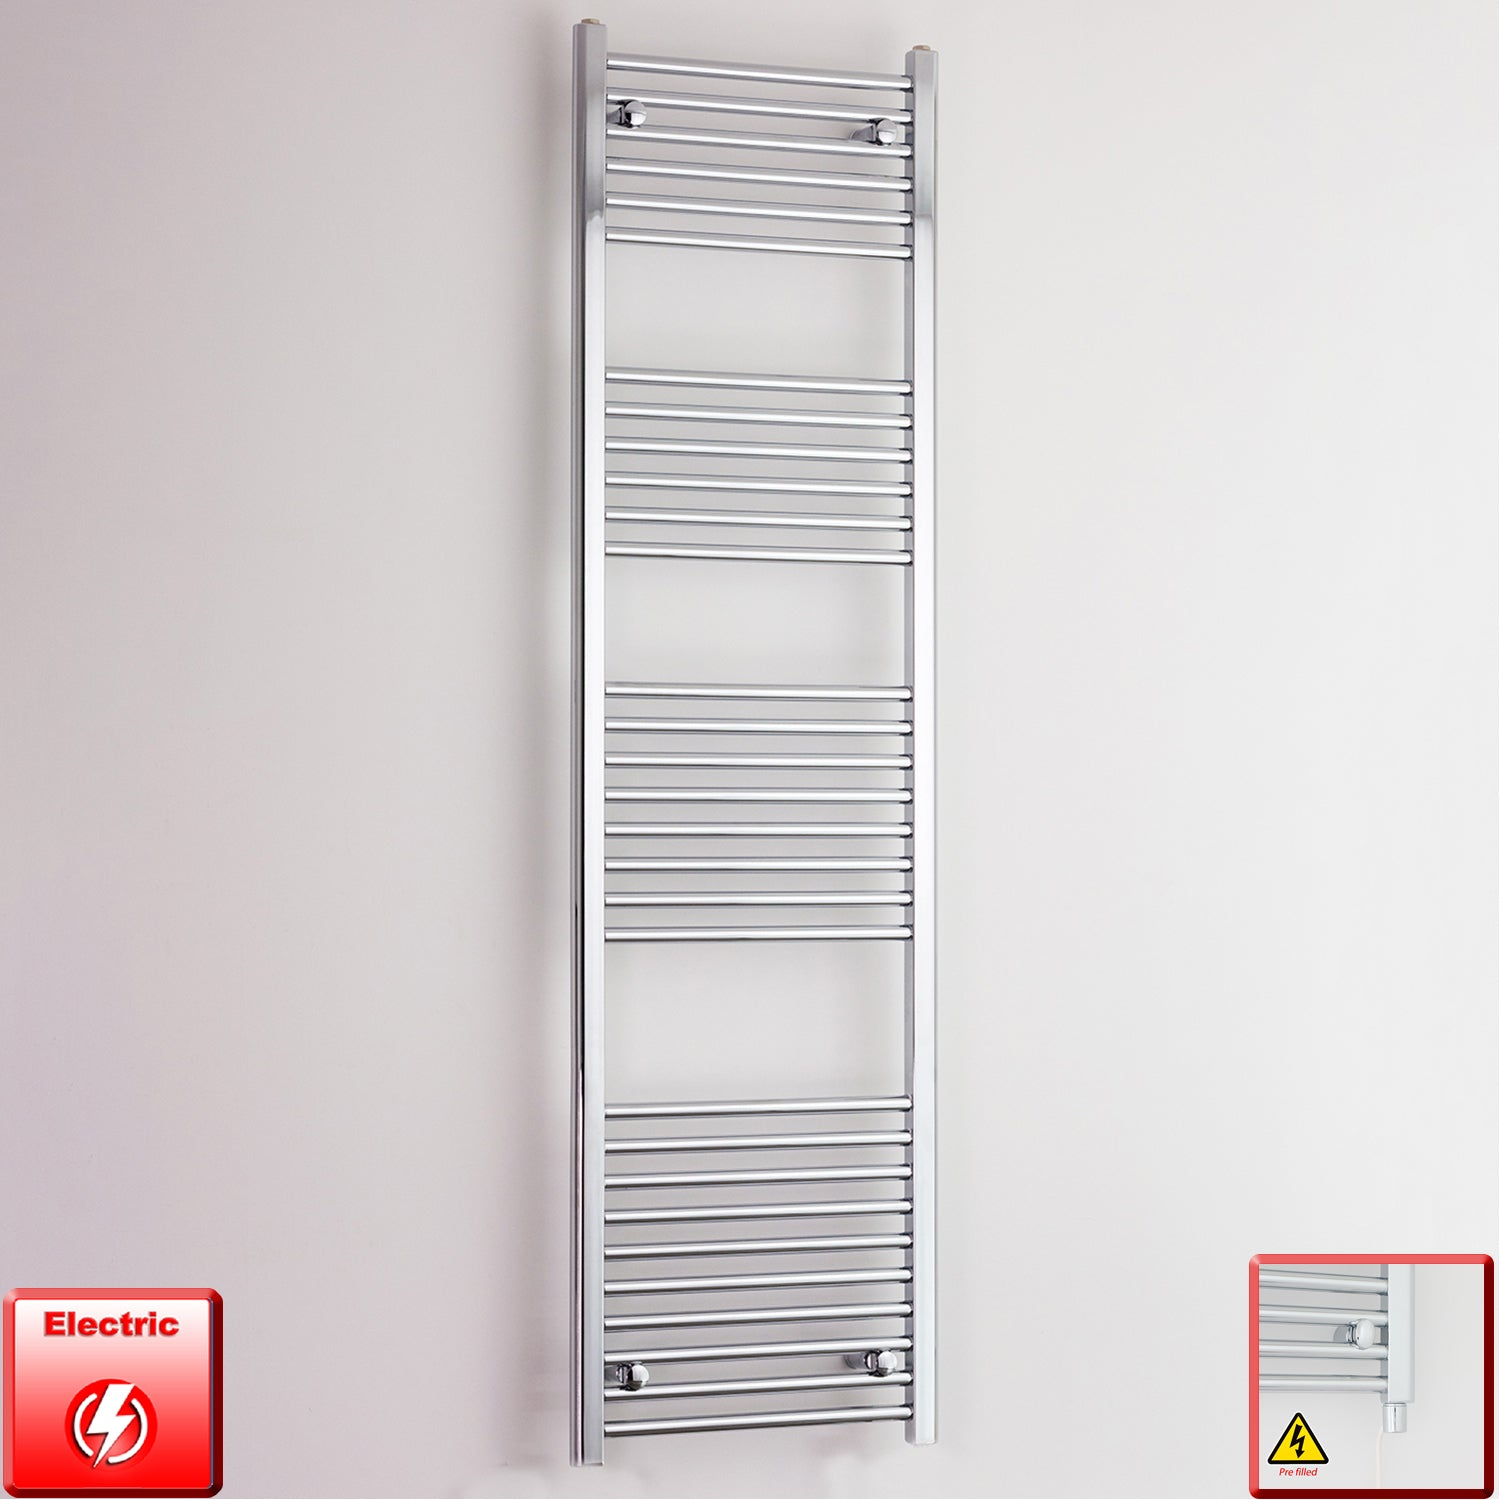 600mm Wide 1800mm High Flat Or Curved Chrome Pre-Filled Electric Heated Towel Rail Radiator HTR,Straight / Single Heat Element